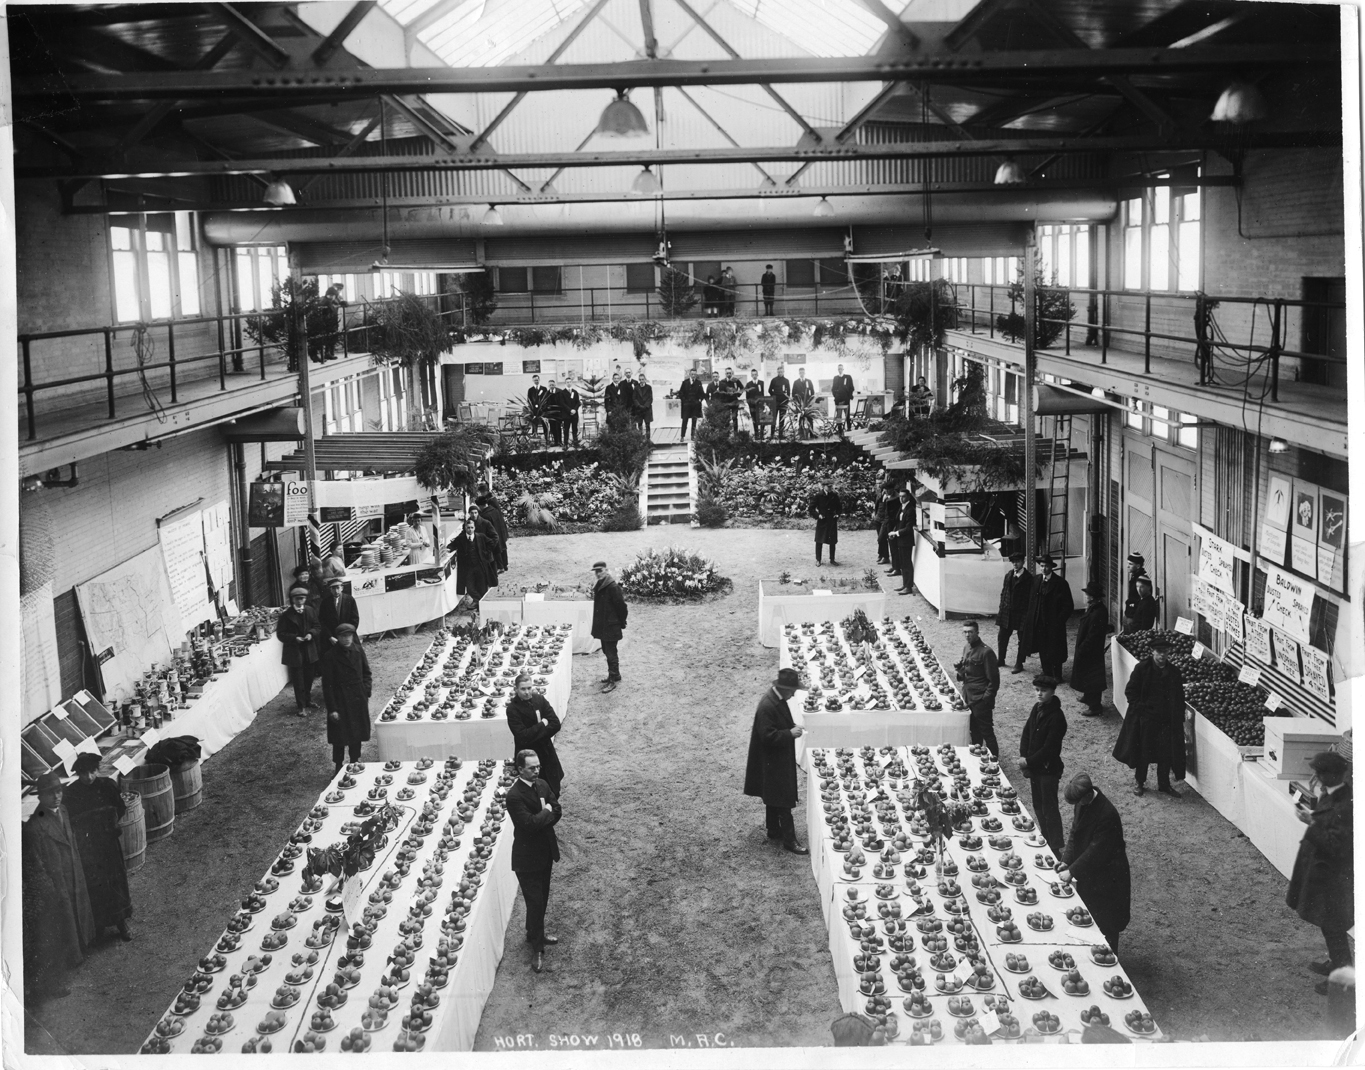 Horticulture Show. 1918